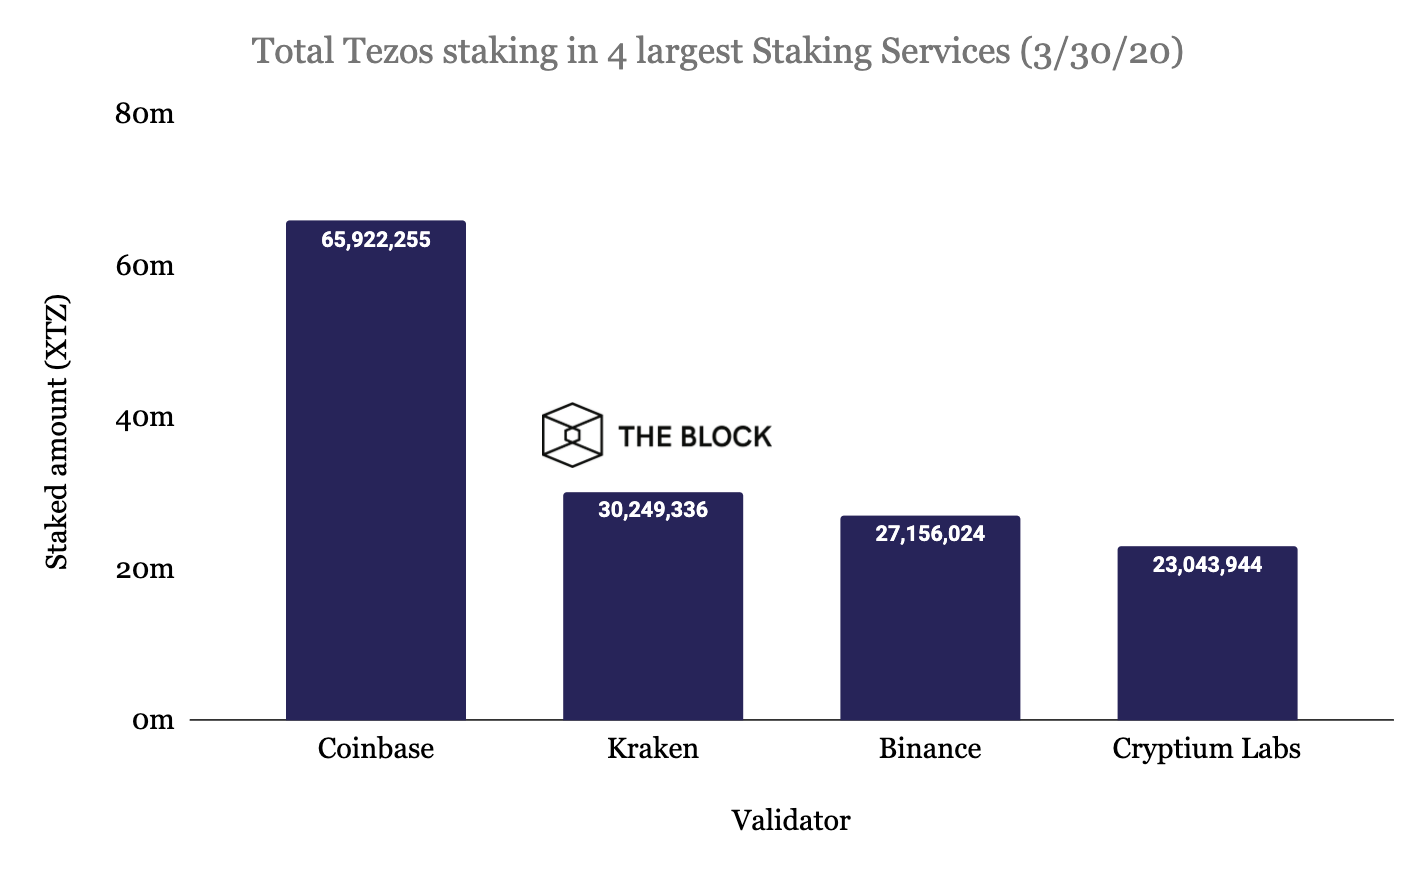 La répartition du staking de Tezos (XTZ)